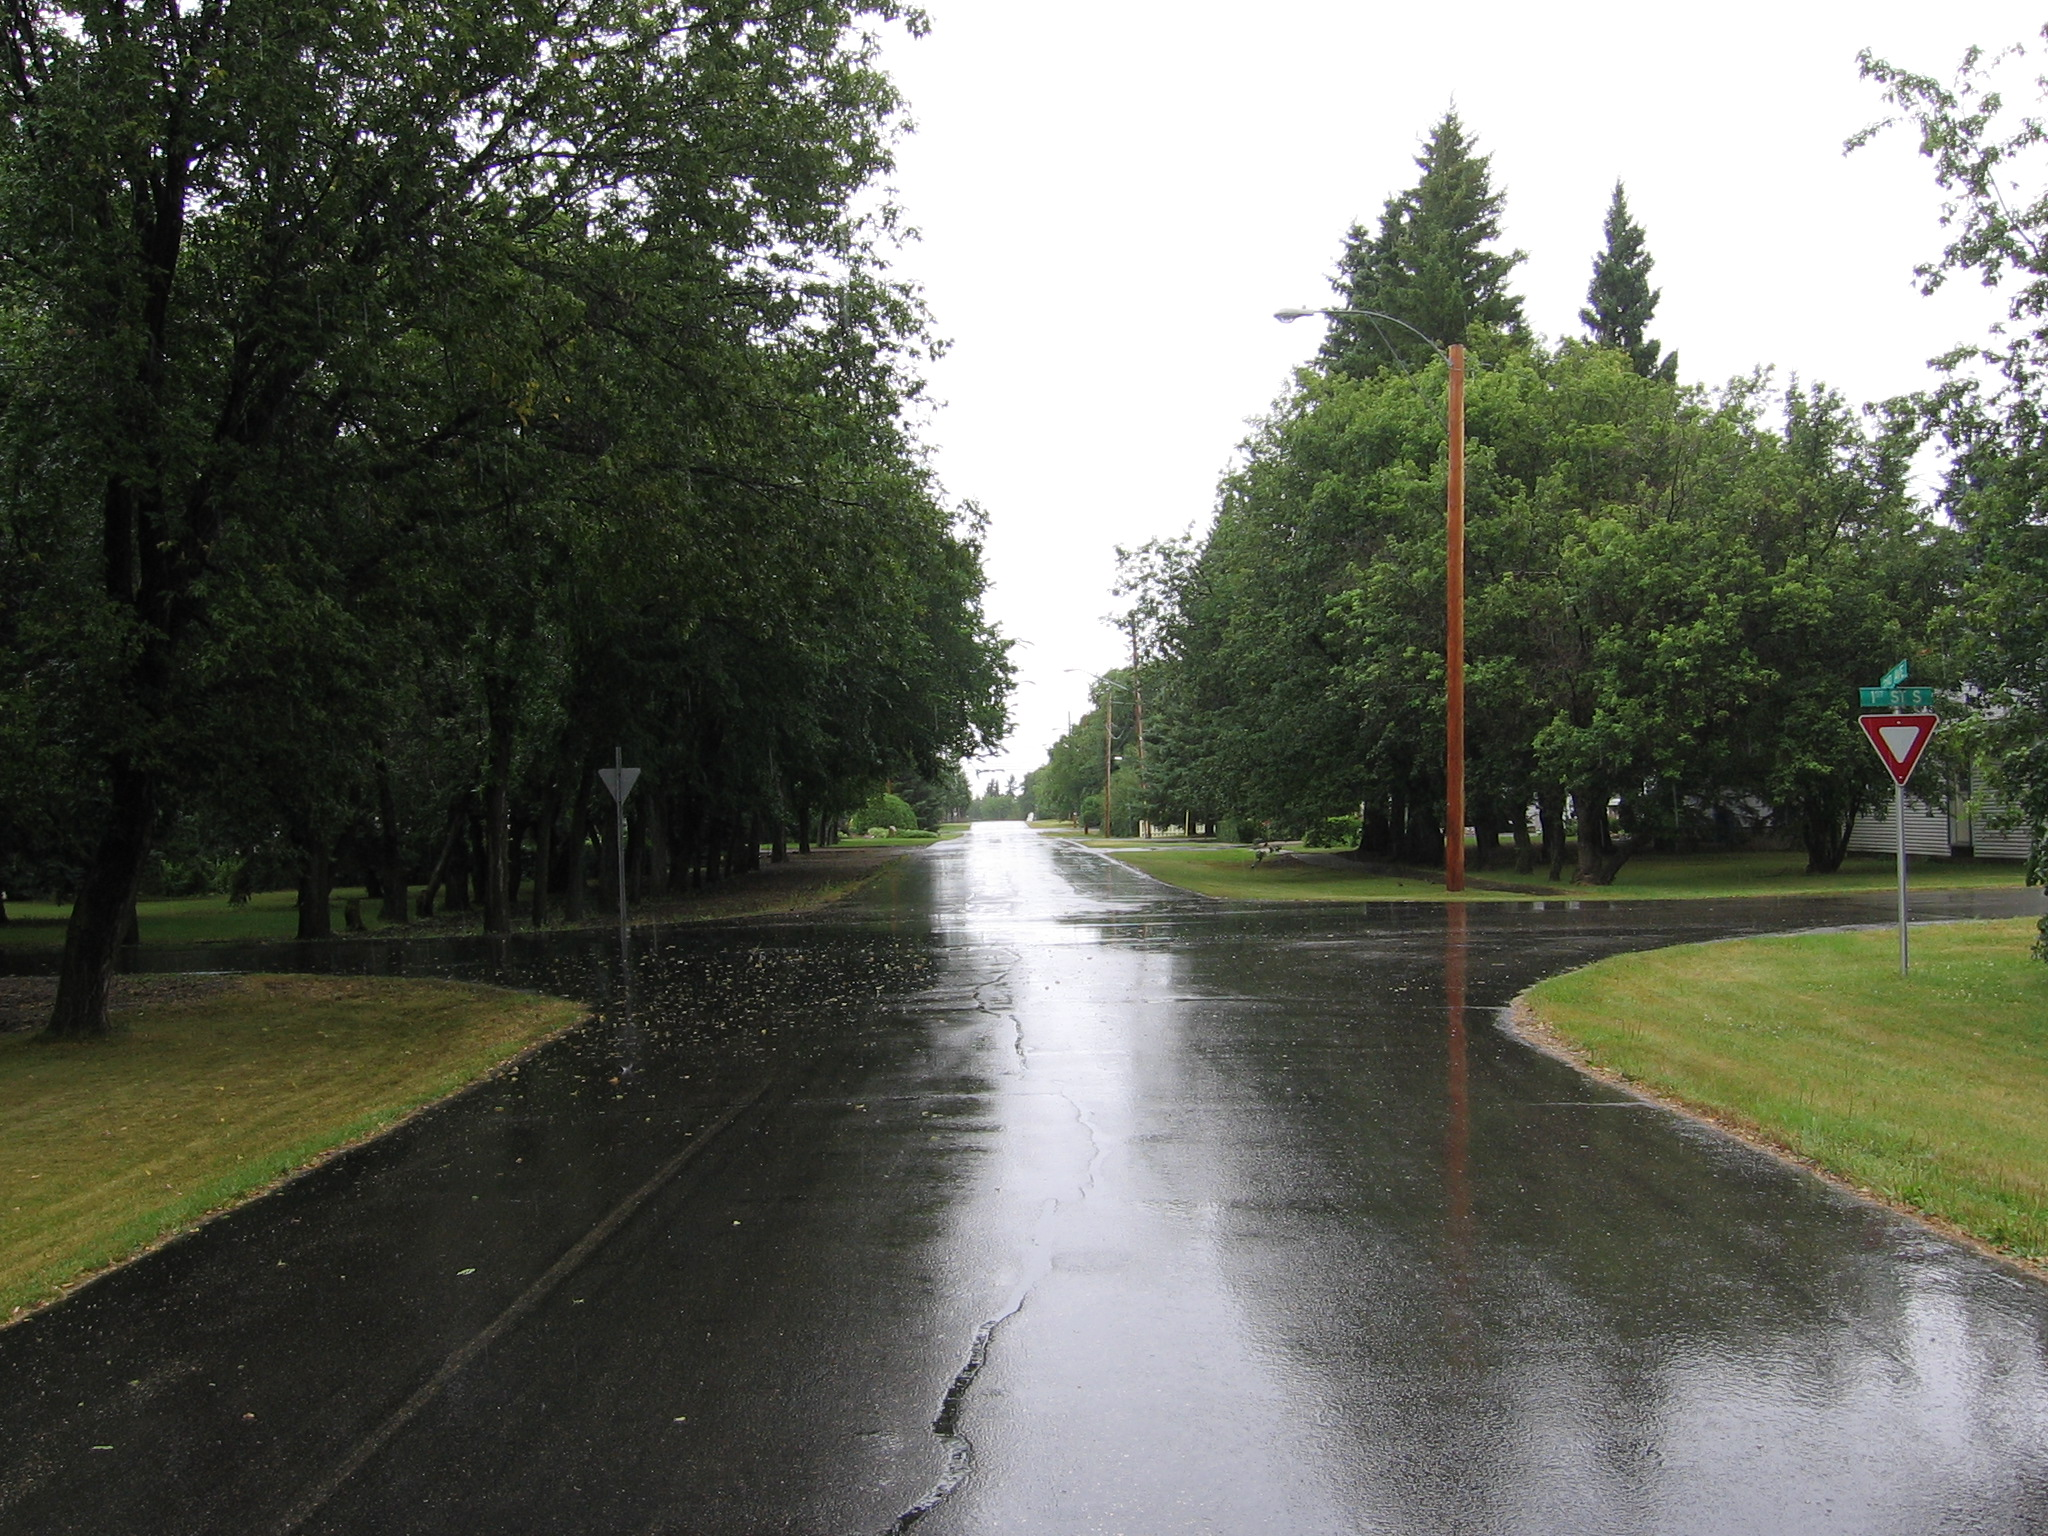 Rain-soaked street in Waldheim, Saskatchewan